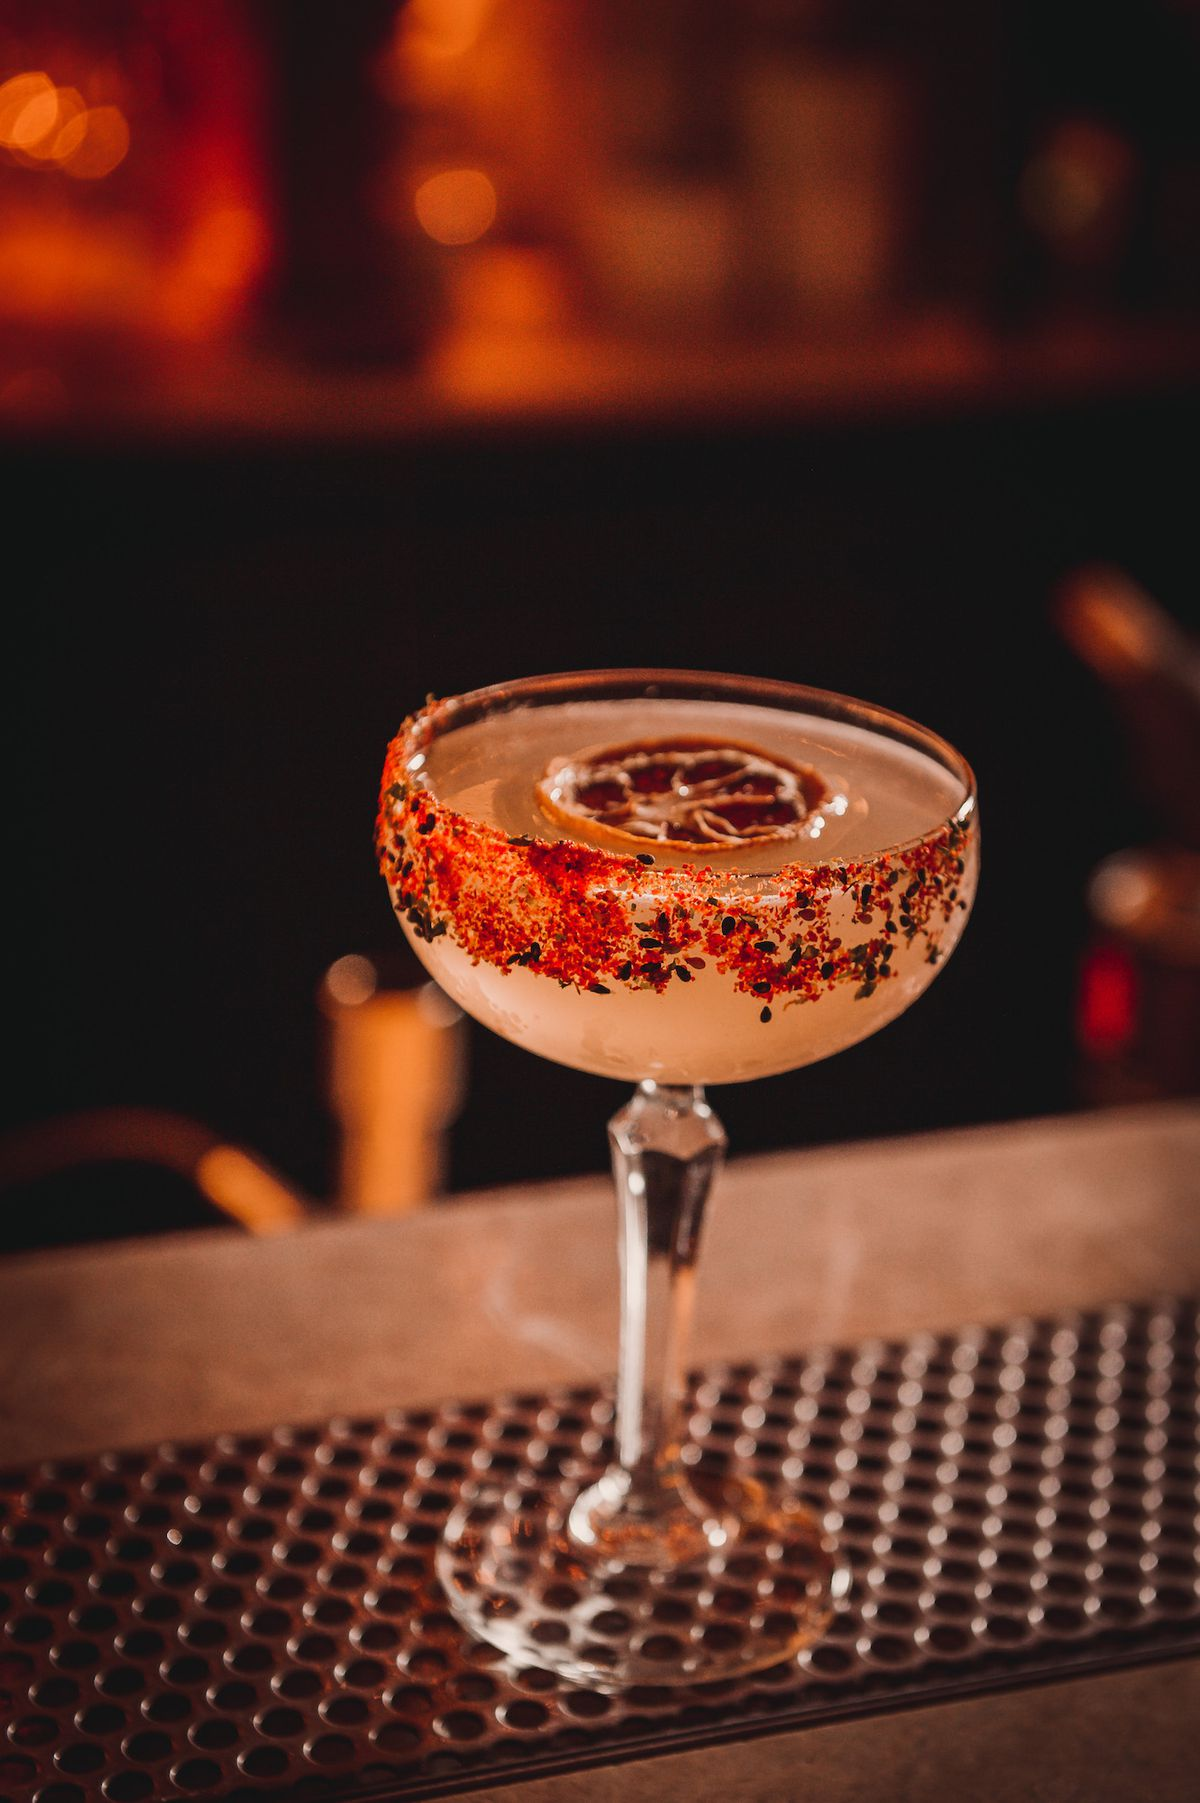 A deep red photo of a margarita with red salt on the rim, at a bar.